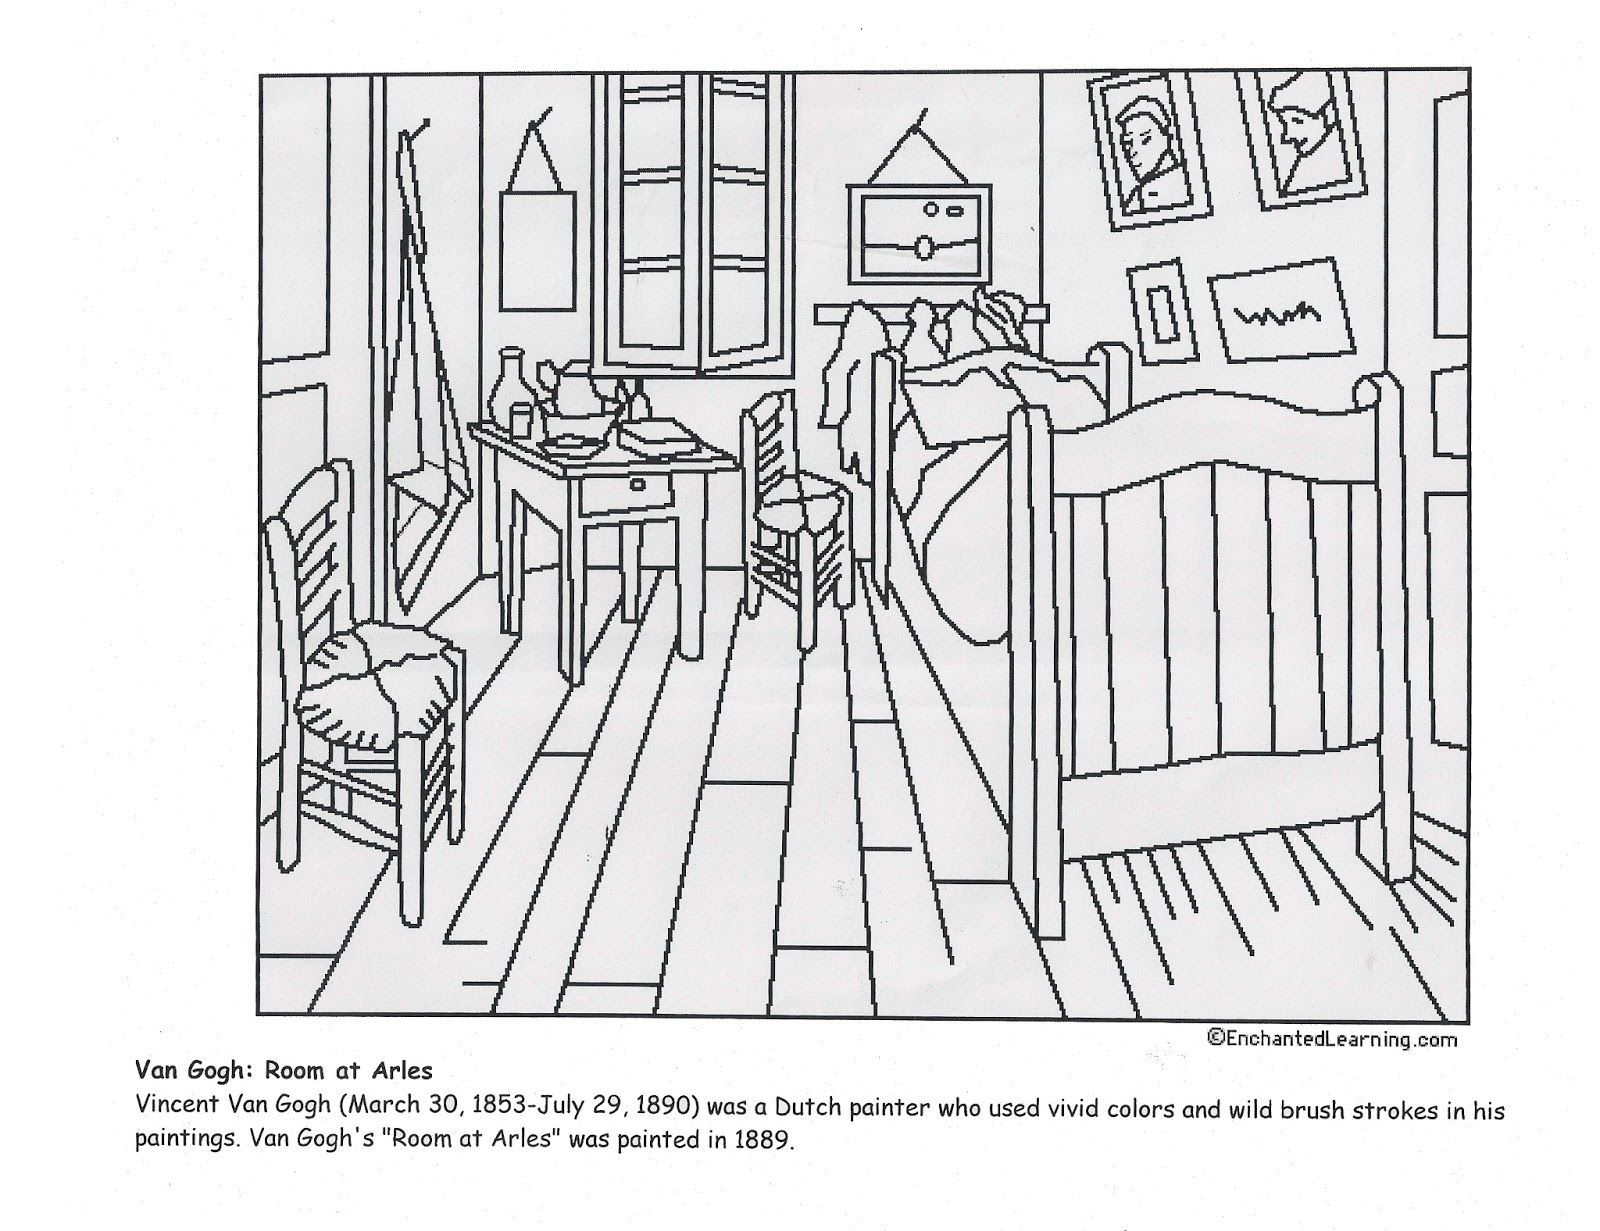 Vincent Van Gogh S Bedroom At Arles Coloring Page In